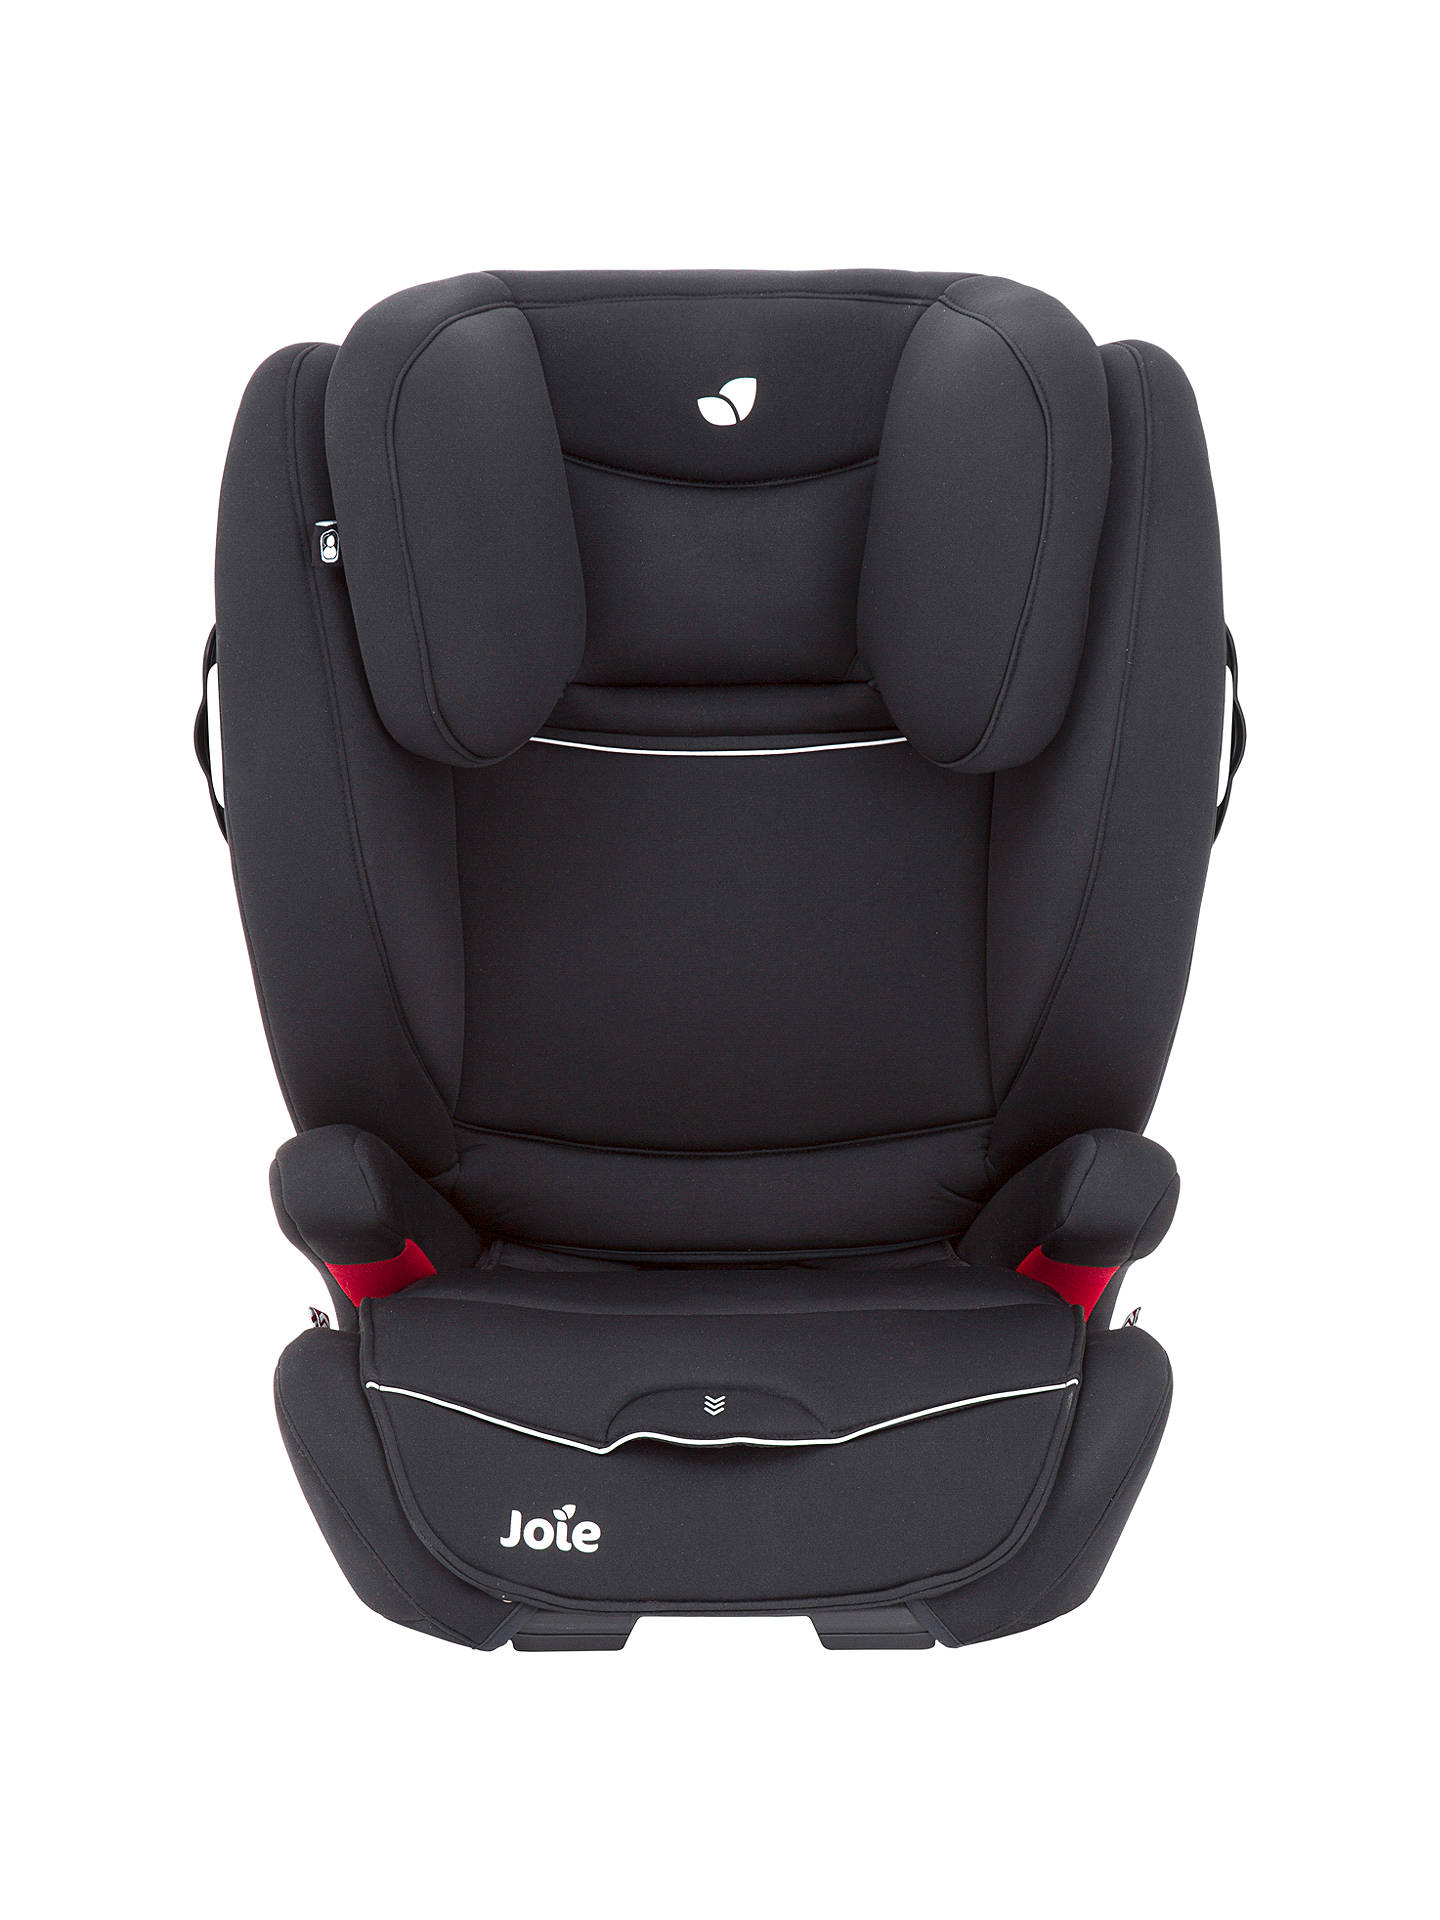 Joie Baby Duallo Group 2/3 Car Seat, Tuxedo Black at John ...